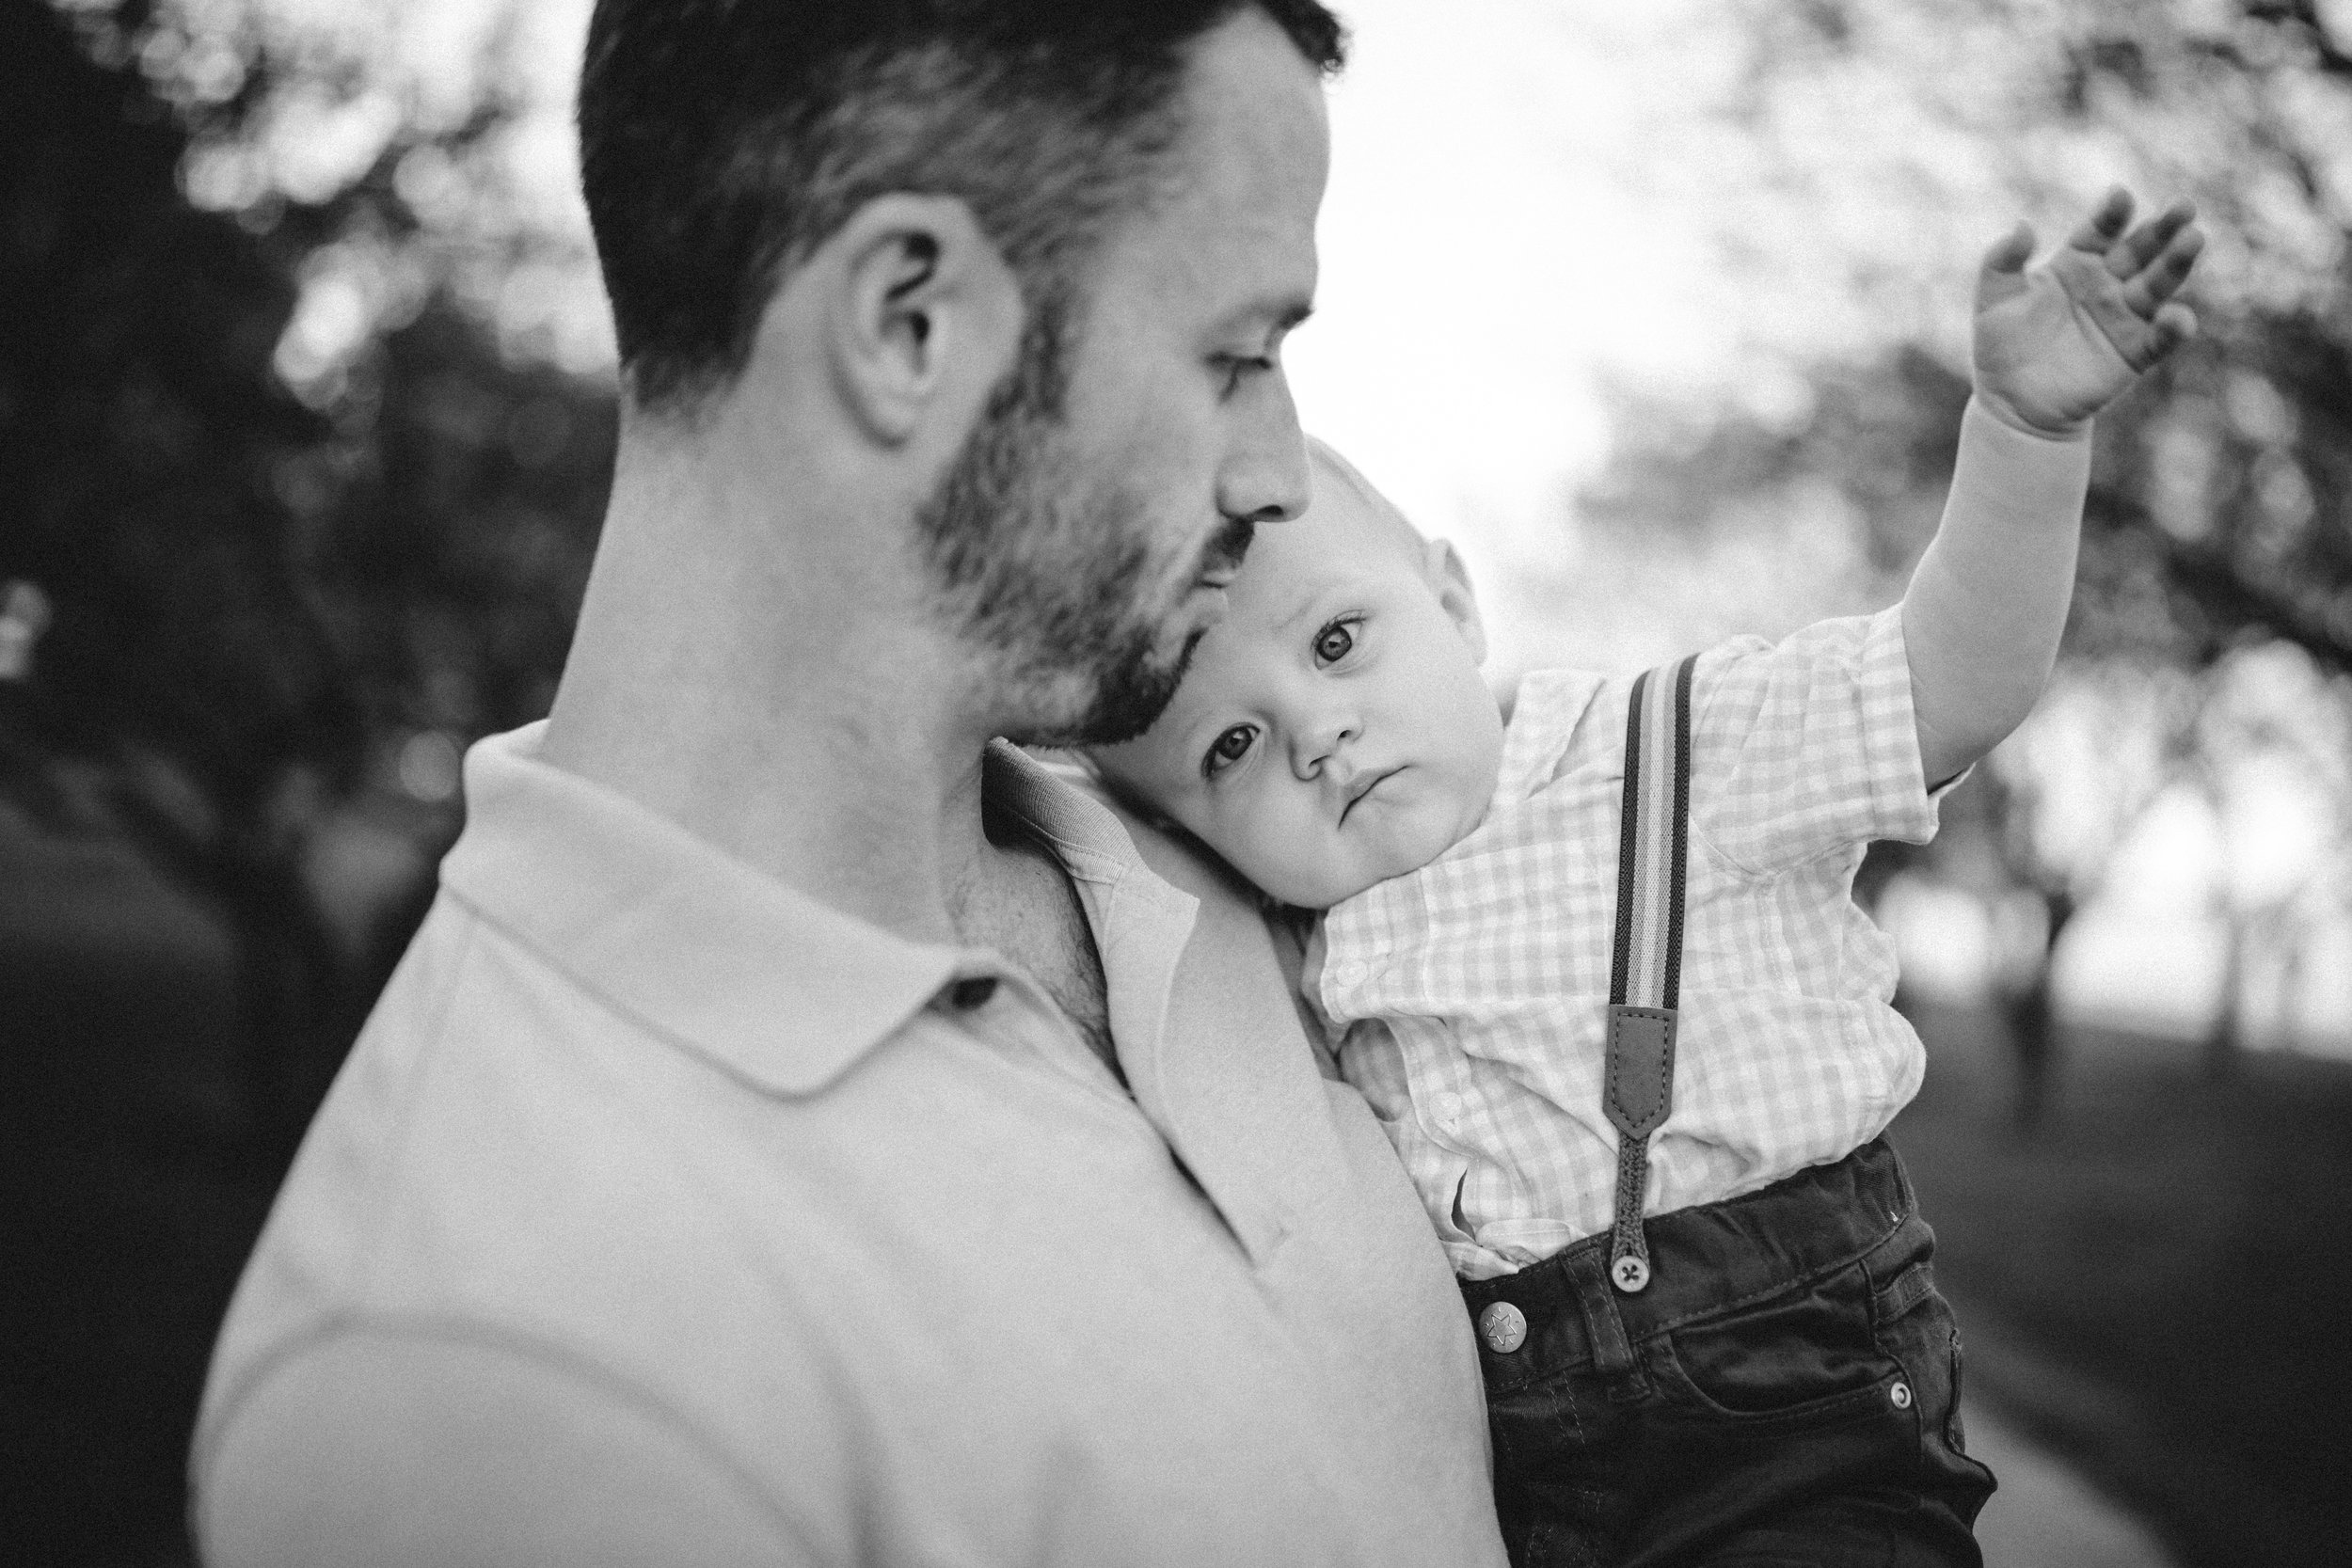 funny family photo, cute family portraits, baby waving bye, baby waving goodbye, dad and baby, dad and baby portrait, dad and baby family photography, natural family photos